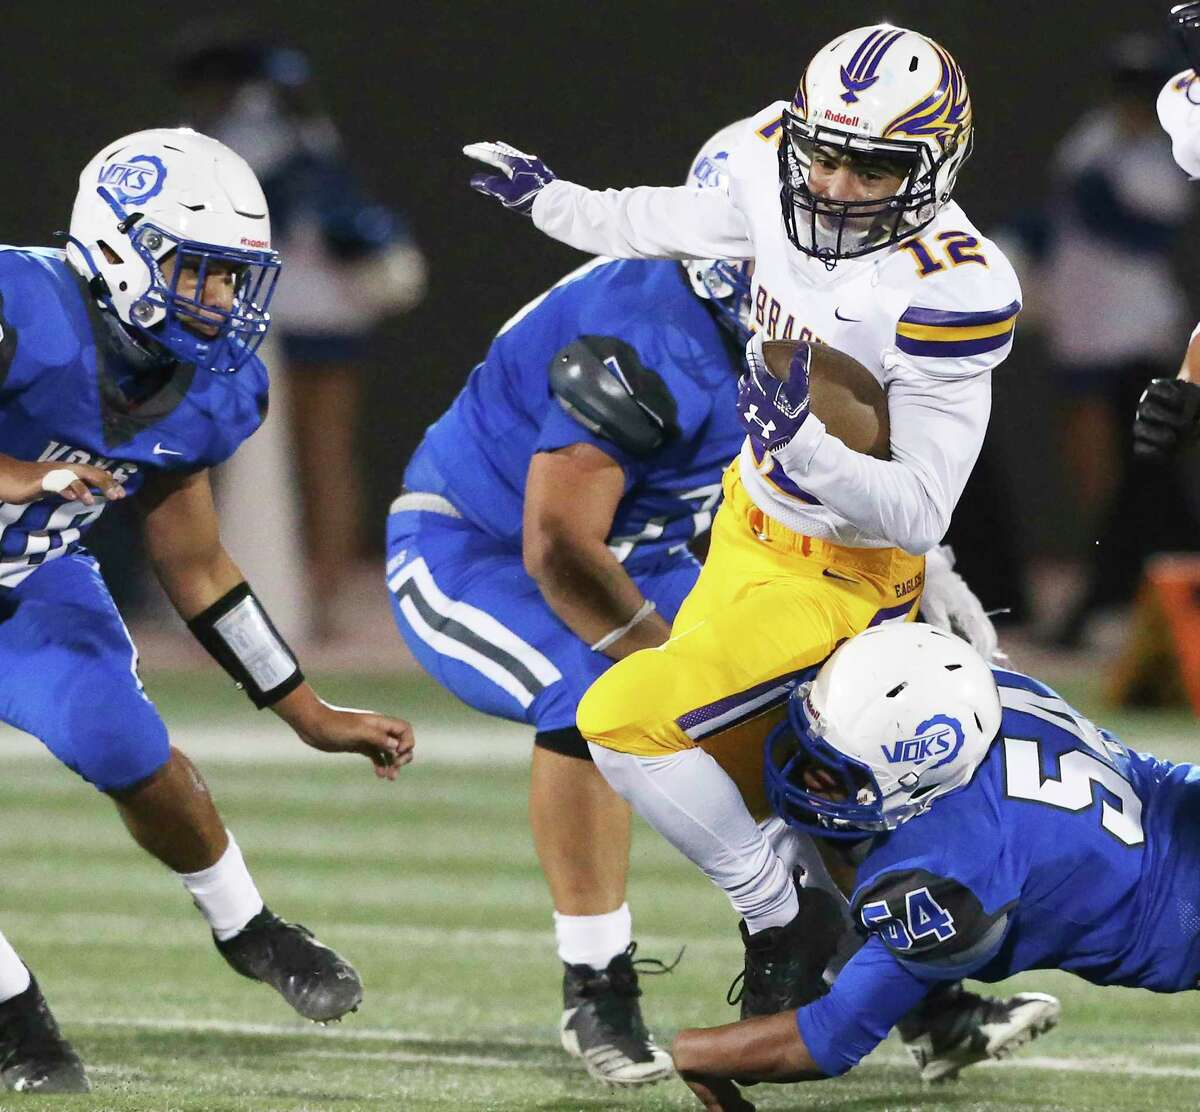 Aiden Garcia is brought on the ground by Vok defender Dontrevious Wellons as Brackenridge plays Lanier for the District 13 5-A-I championship at Alamo Stadium on Dec. 4, 2020.